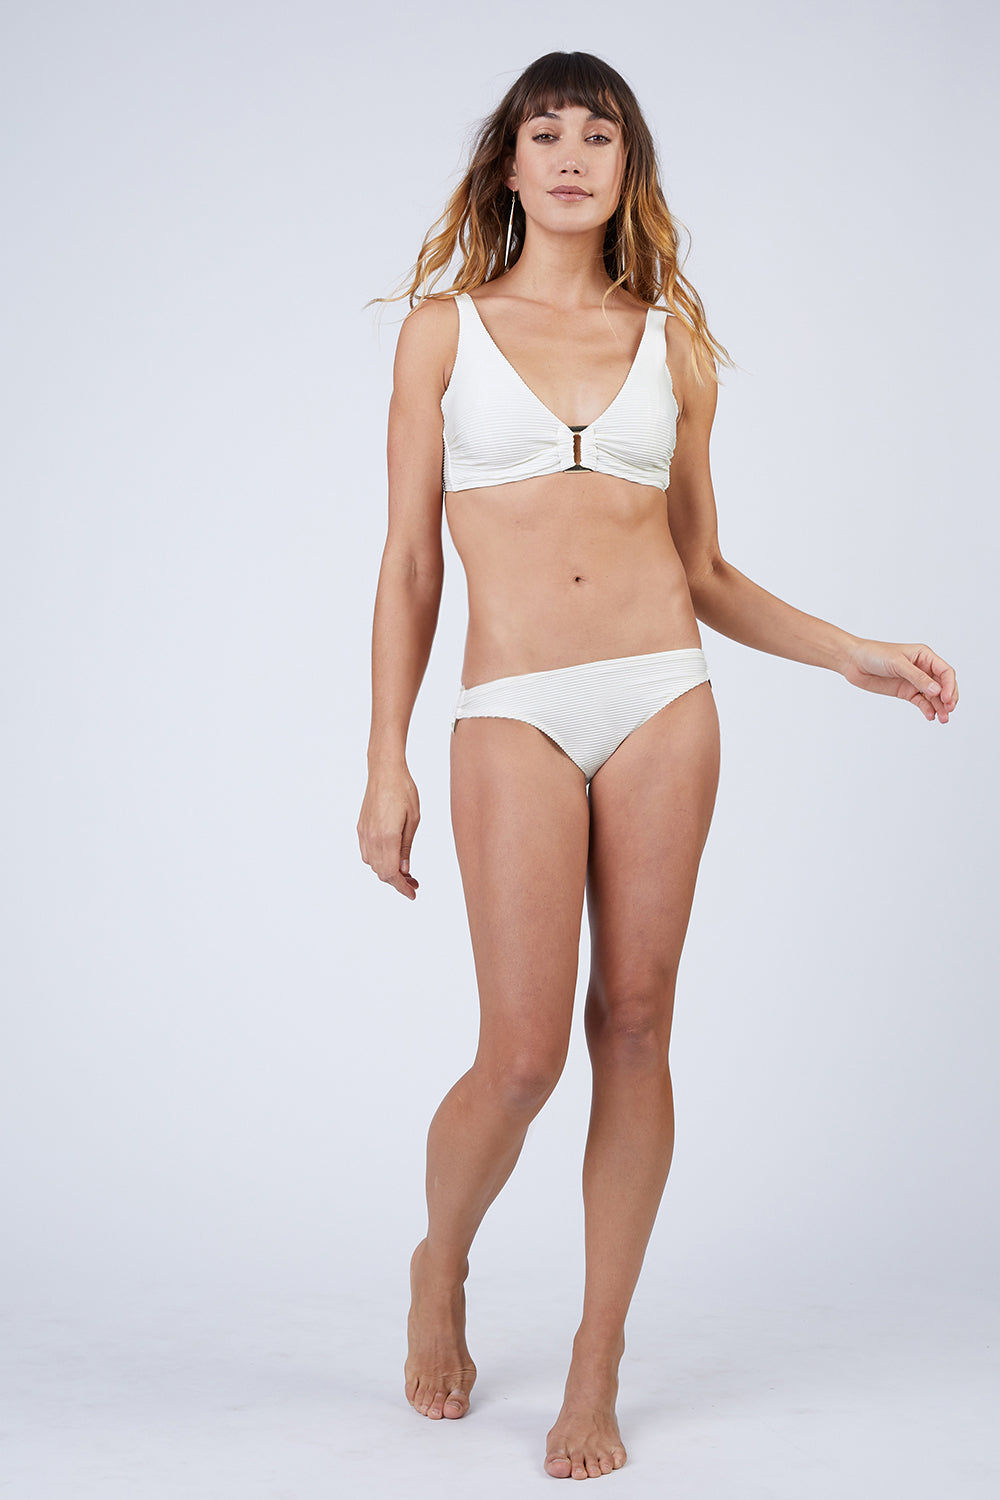 HEIDI KLEIN Rectangle Bikini Bottom - Cream Bikini Bottom | Cream| Heidi Klein Rectangle Bikini Bottom - Cream. Features:  Fully elasticated along waist and legs for a snug fit and to help stay in place when wearer is swimming and fully lined in soft lining for ultimate comfort. Heidi Klein branded charm detail on back for a luxurious finish. Features bespoke Heidi Klein shiny rectangle hardware at the side seams. Front View